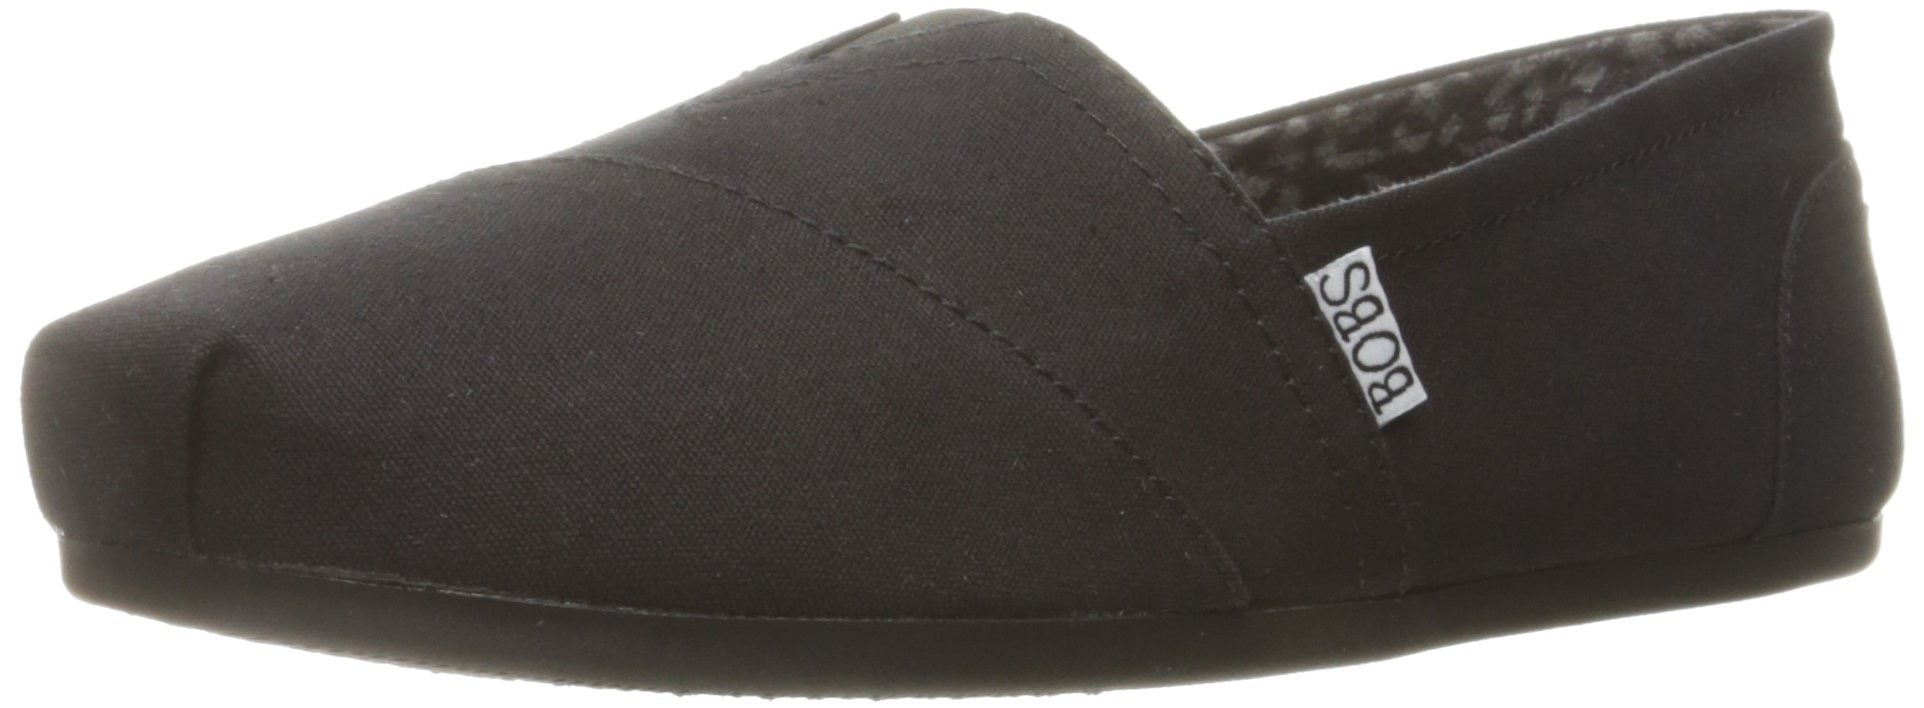 BOBS from Skechers Women's Plush - Peace and Love Flat, Black, 9 W US